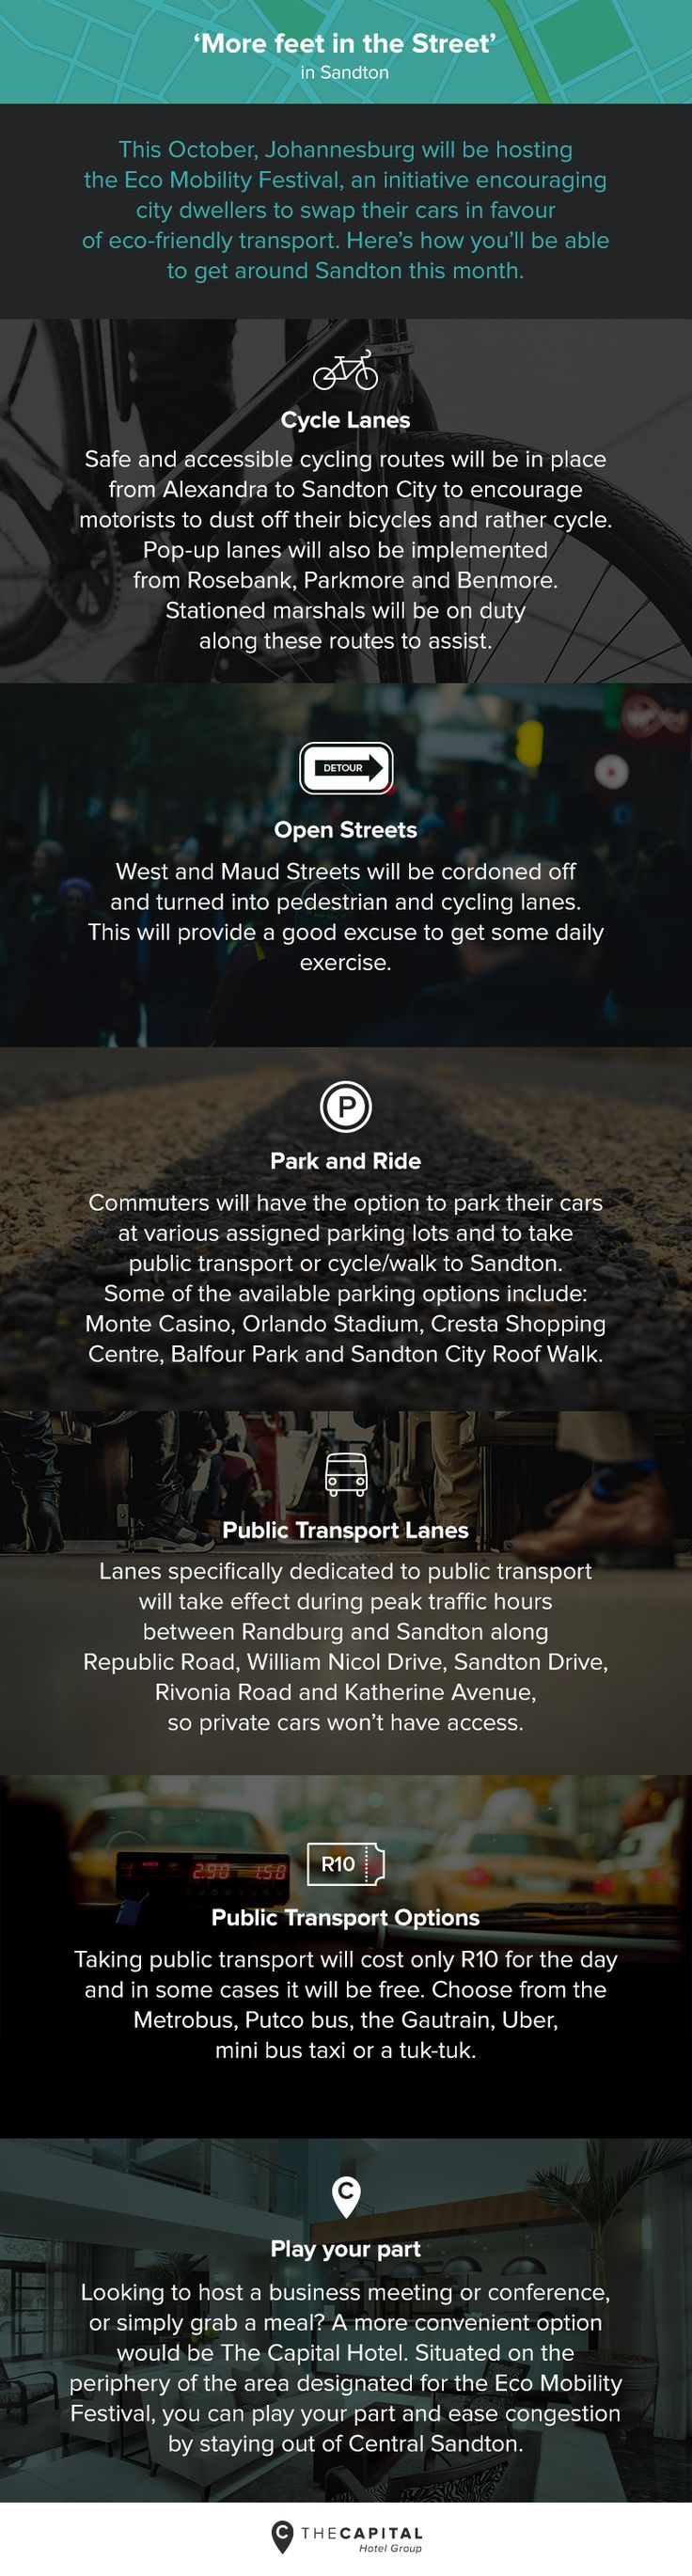 How to get around Sandton during the Eco Mobility Festival in Johannesburg 2015. #transport #travel #johannesburg #southafrica